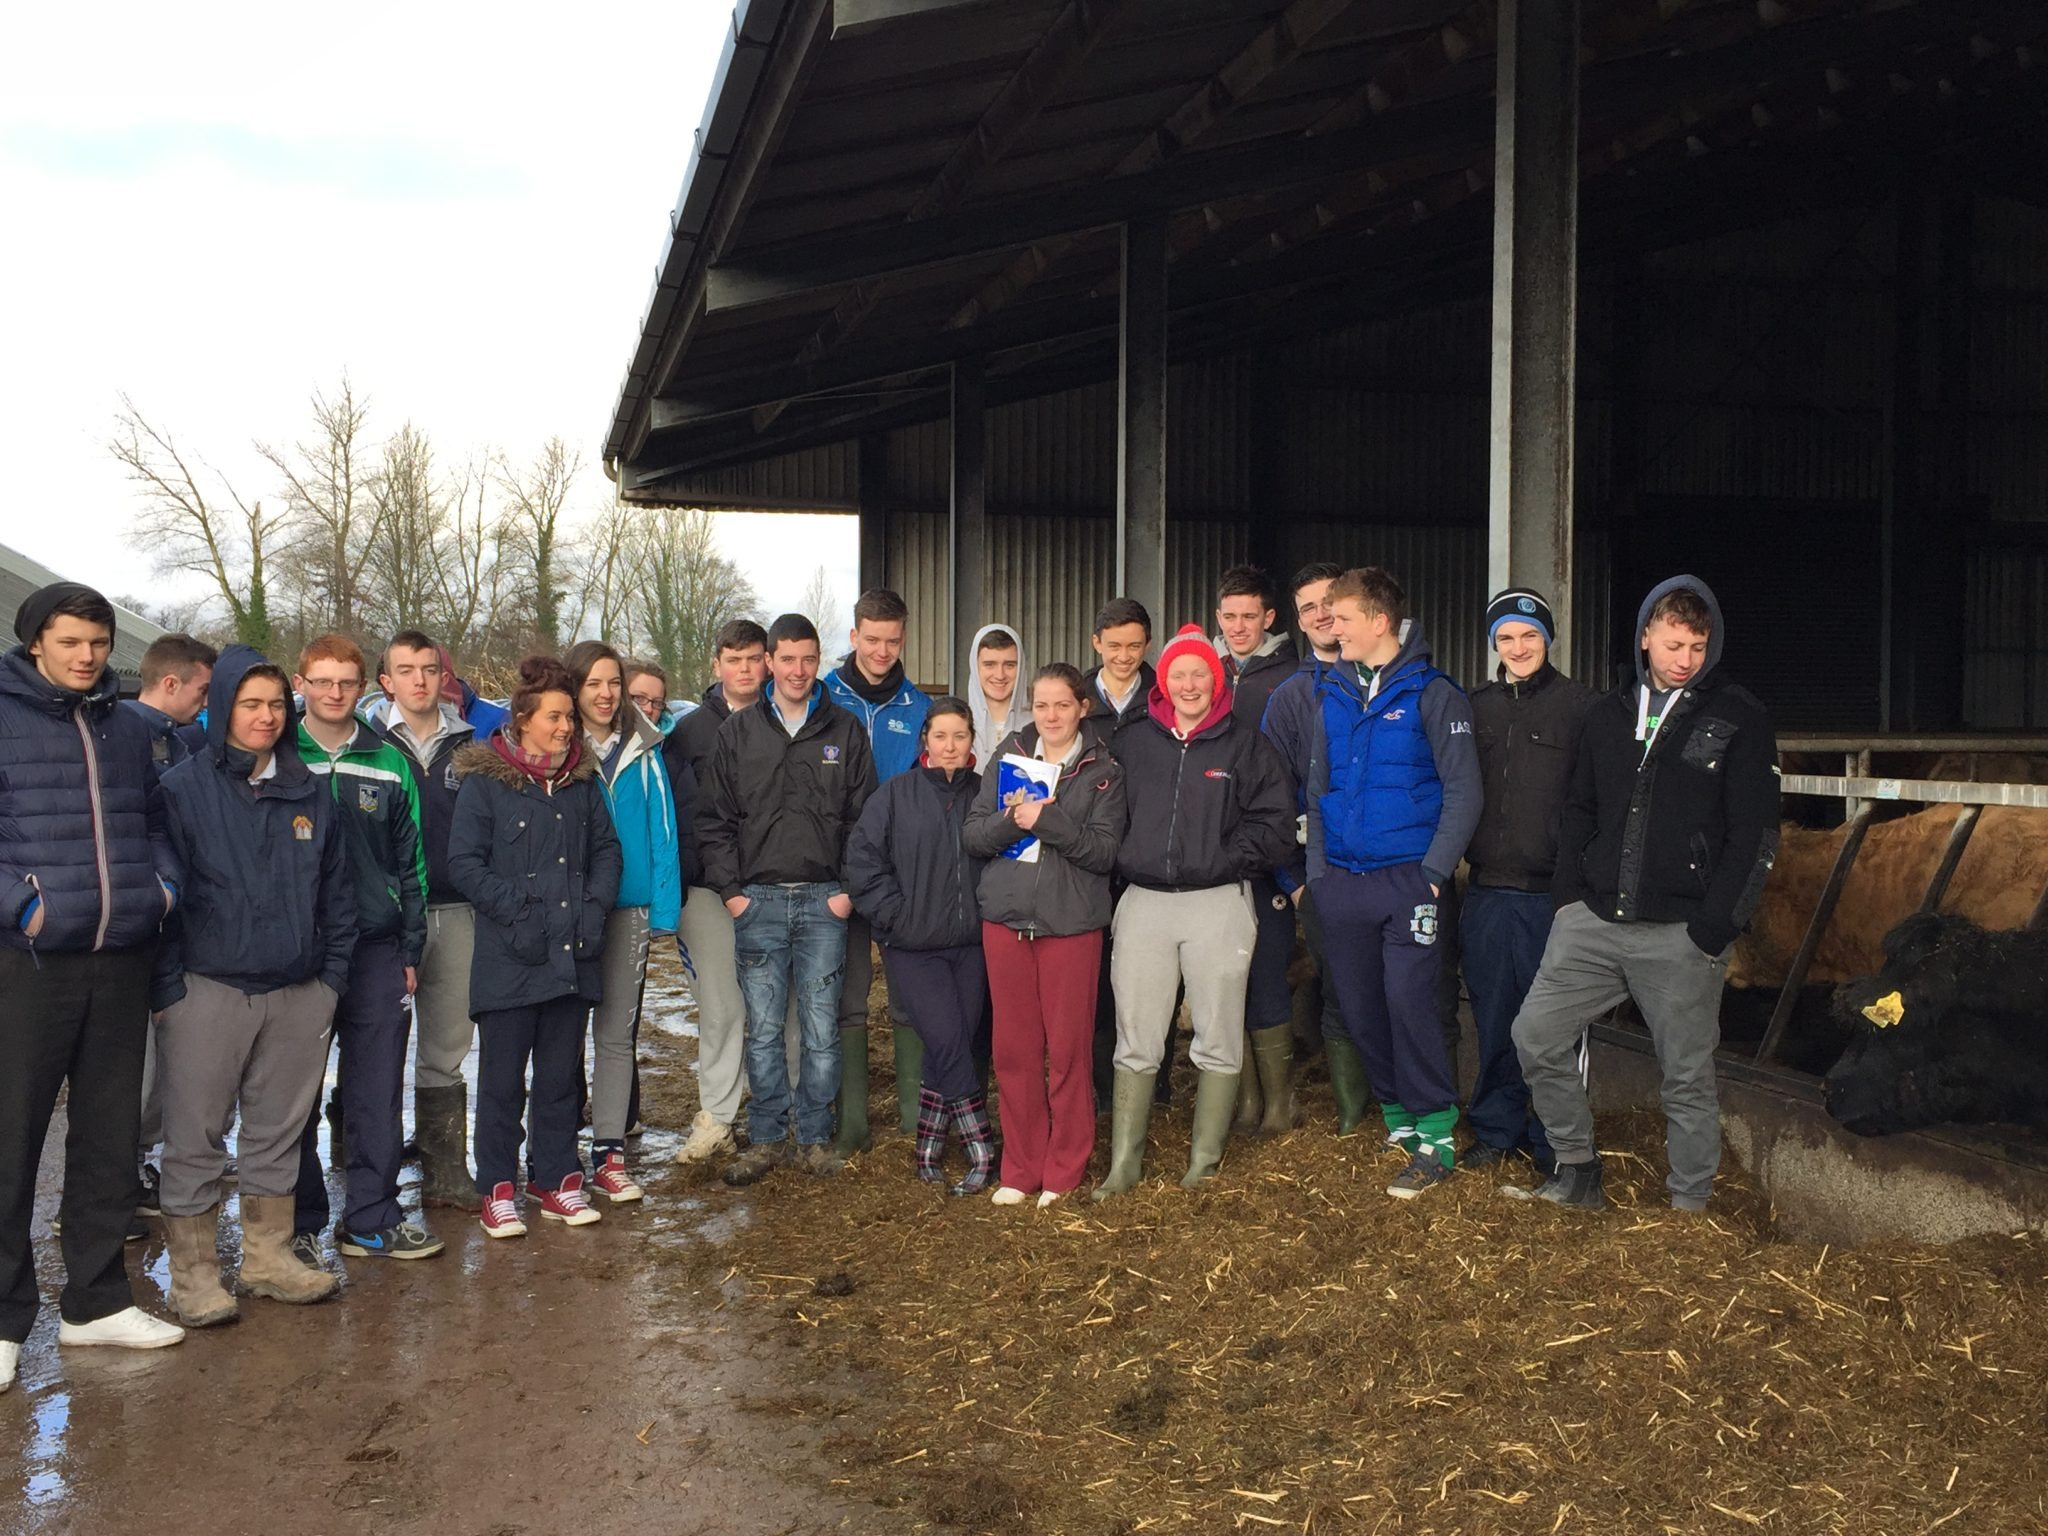 6th Year Pupils of Desmond College on a farm walk at Pallaskenry Agricultural College